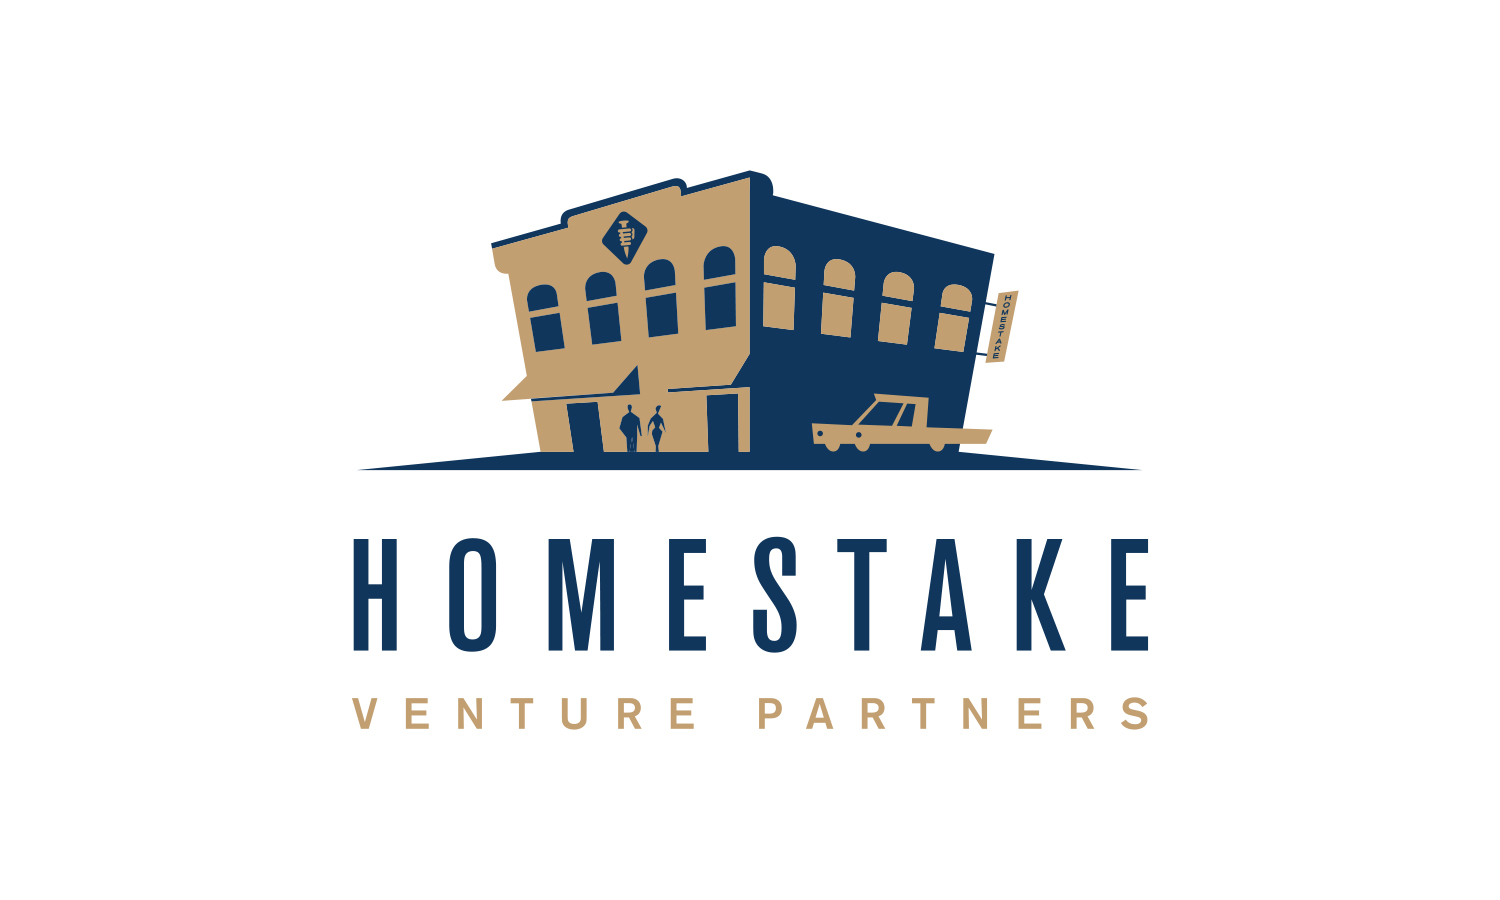 HomeStake Venture Partners